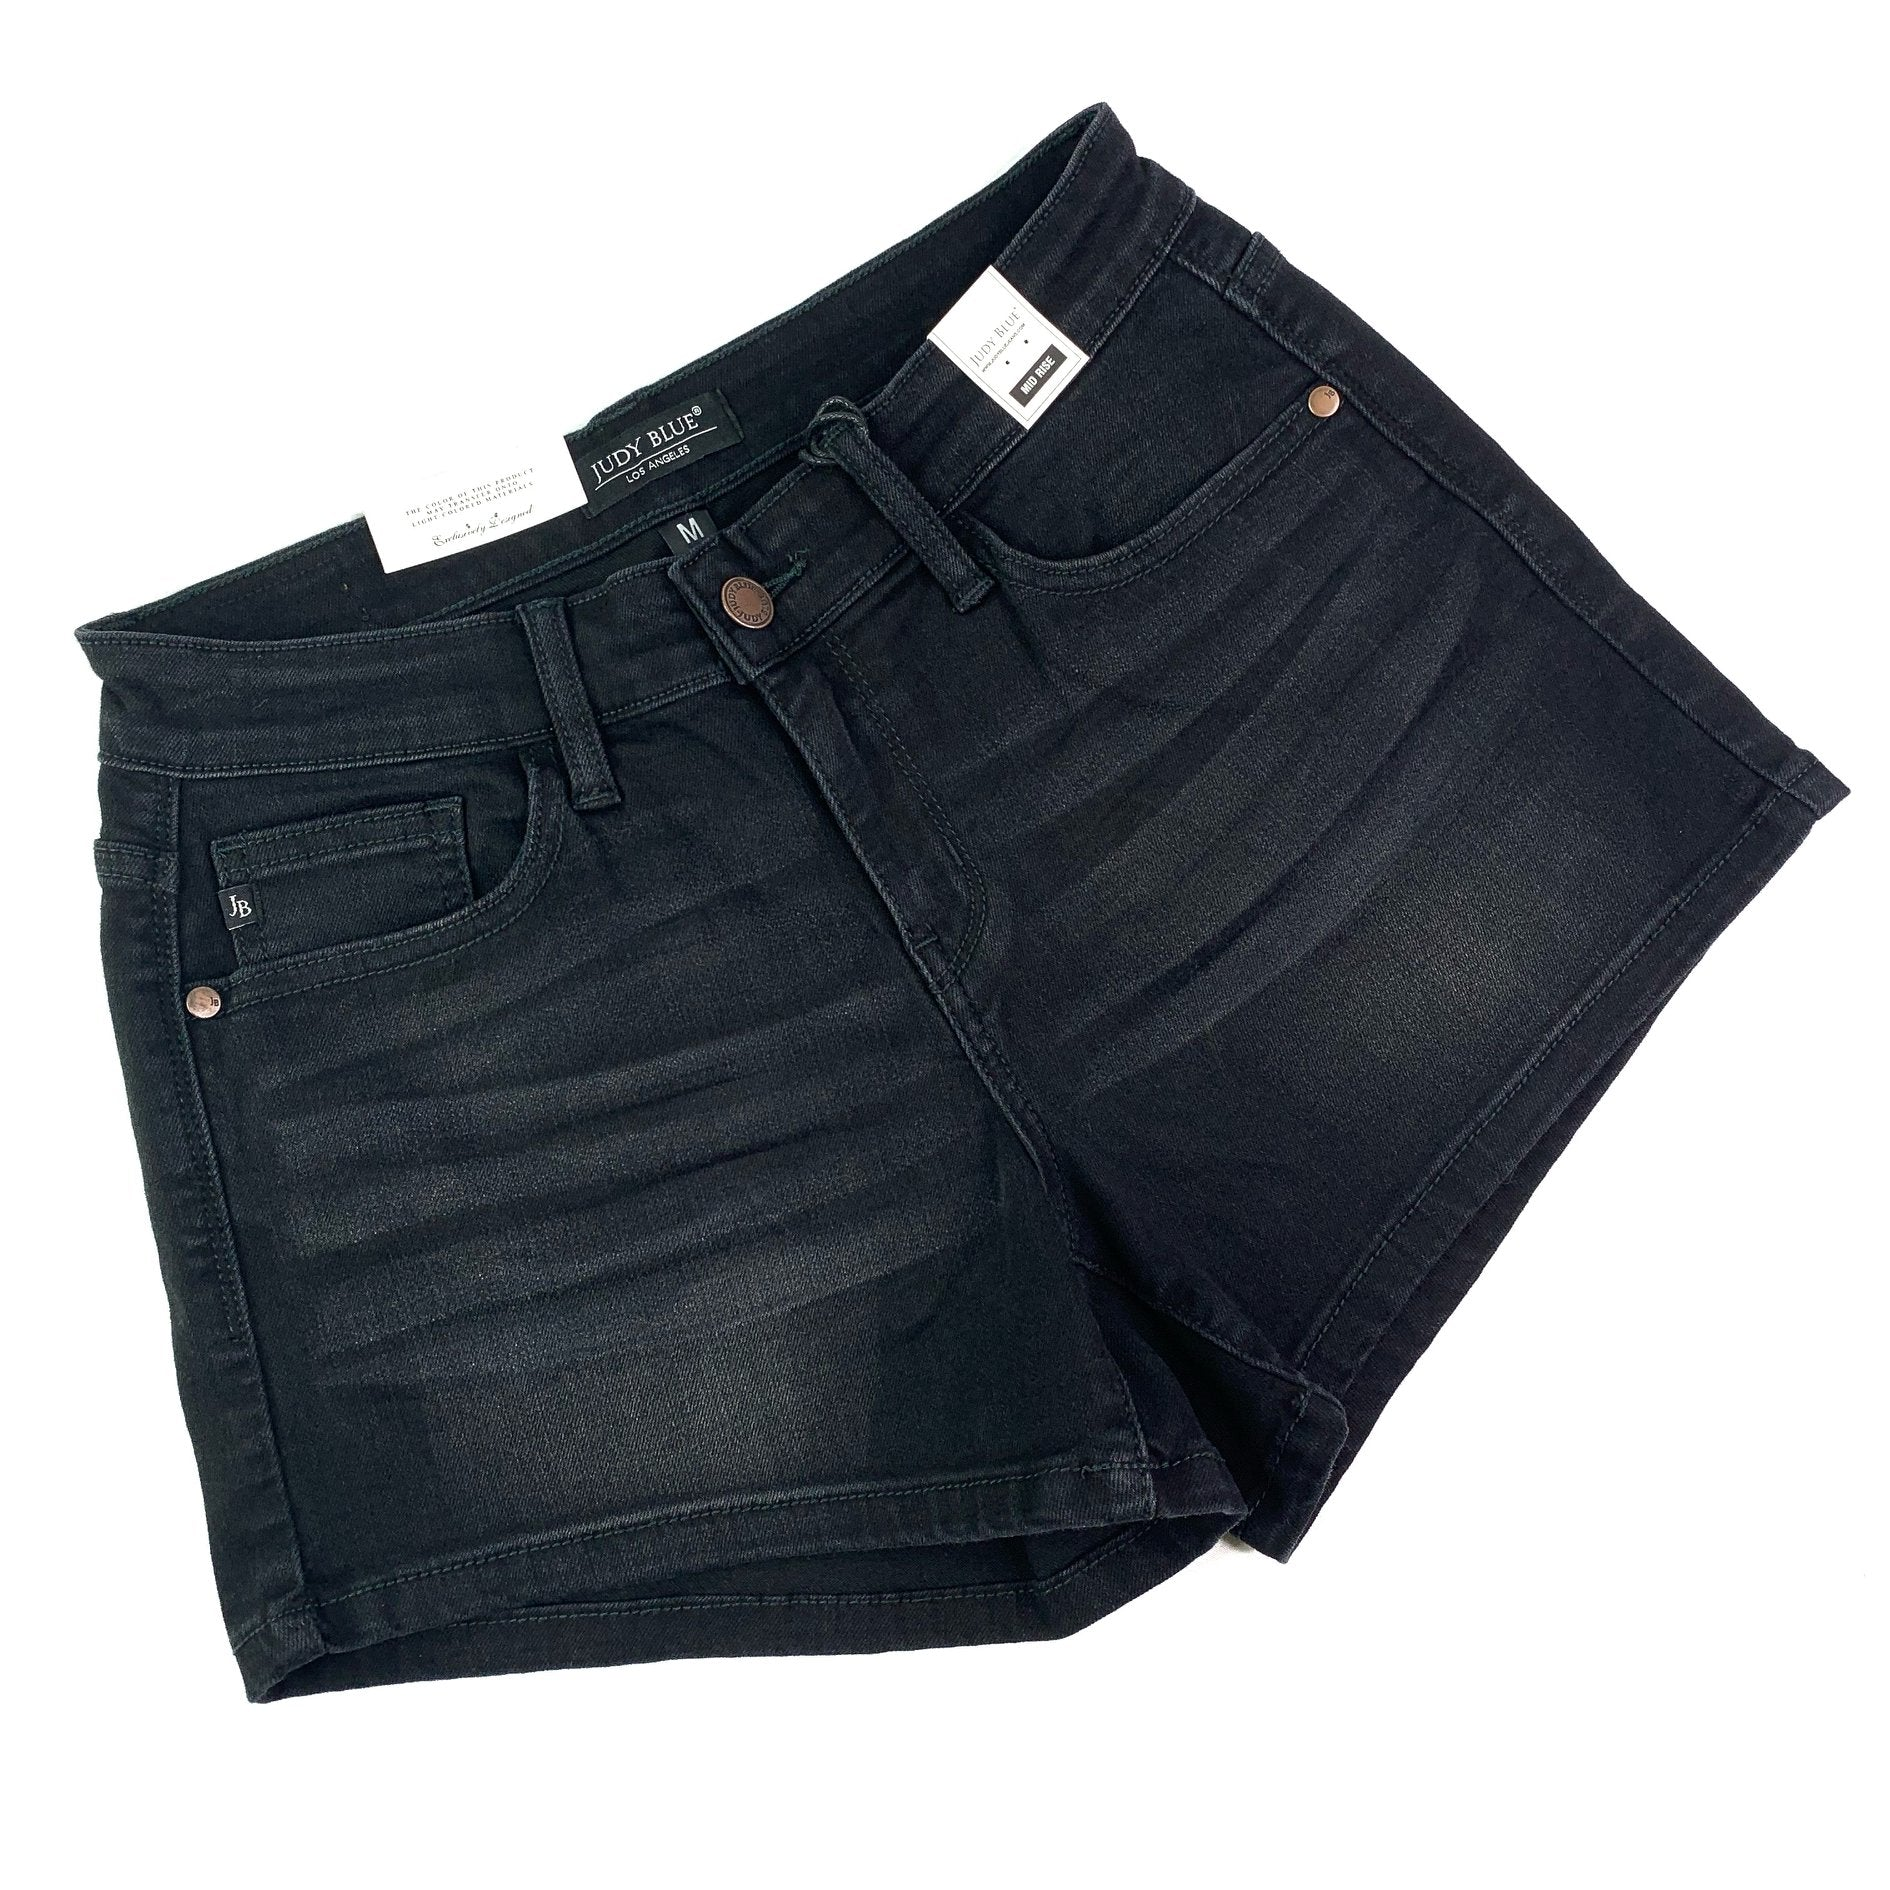 PLUS/REG Judy Blue Black List Nondistressed Shorts